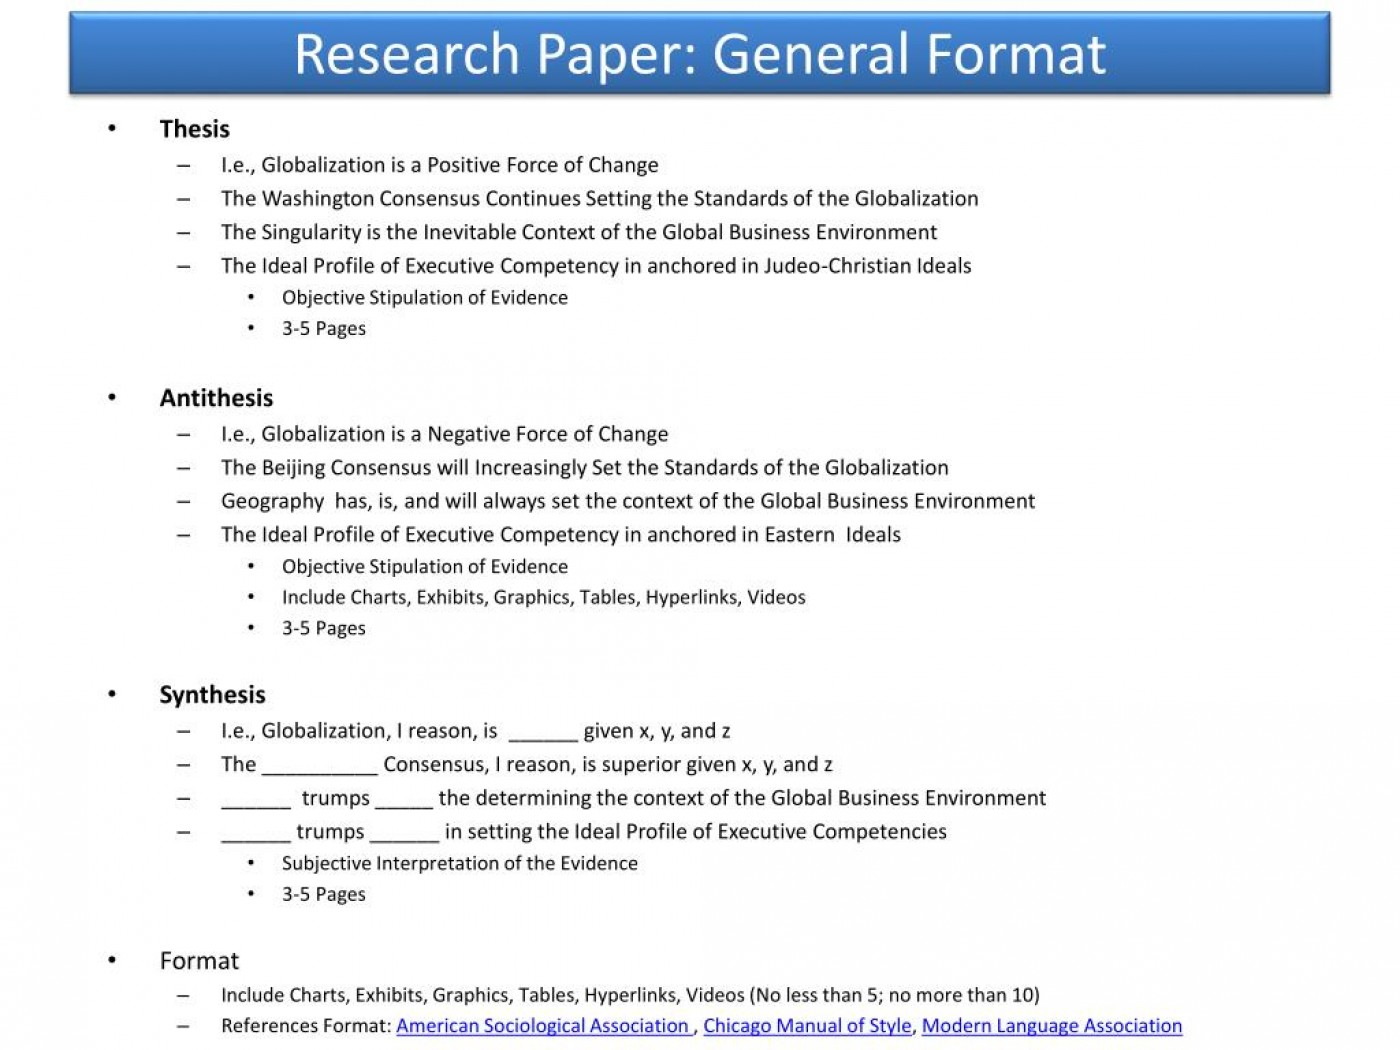 009 Research Paper Powerpoint Presentation Format For General Unique Sample Ppt 1400